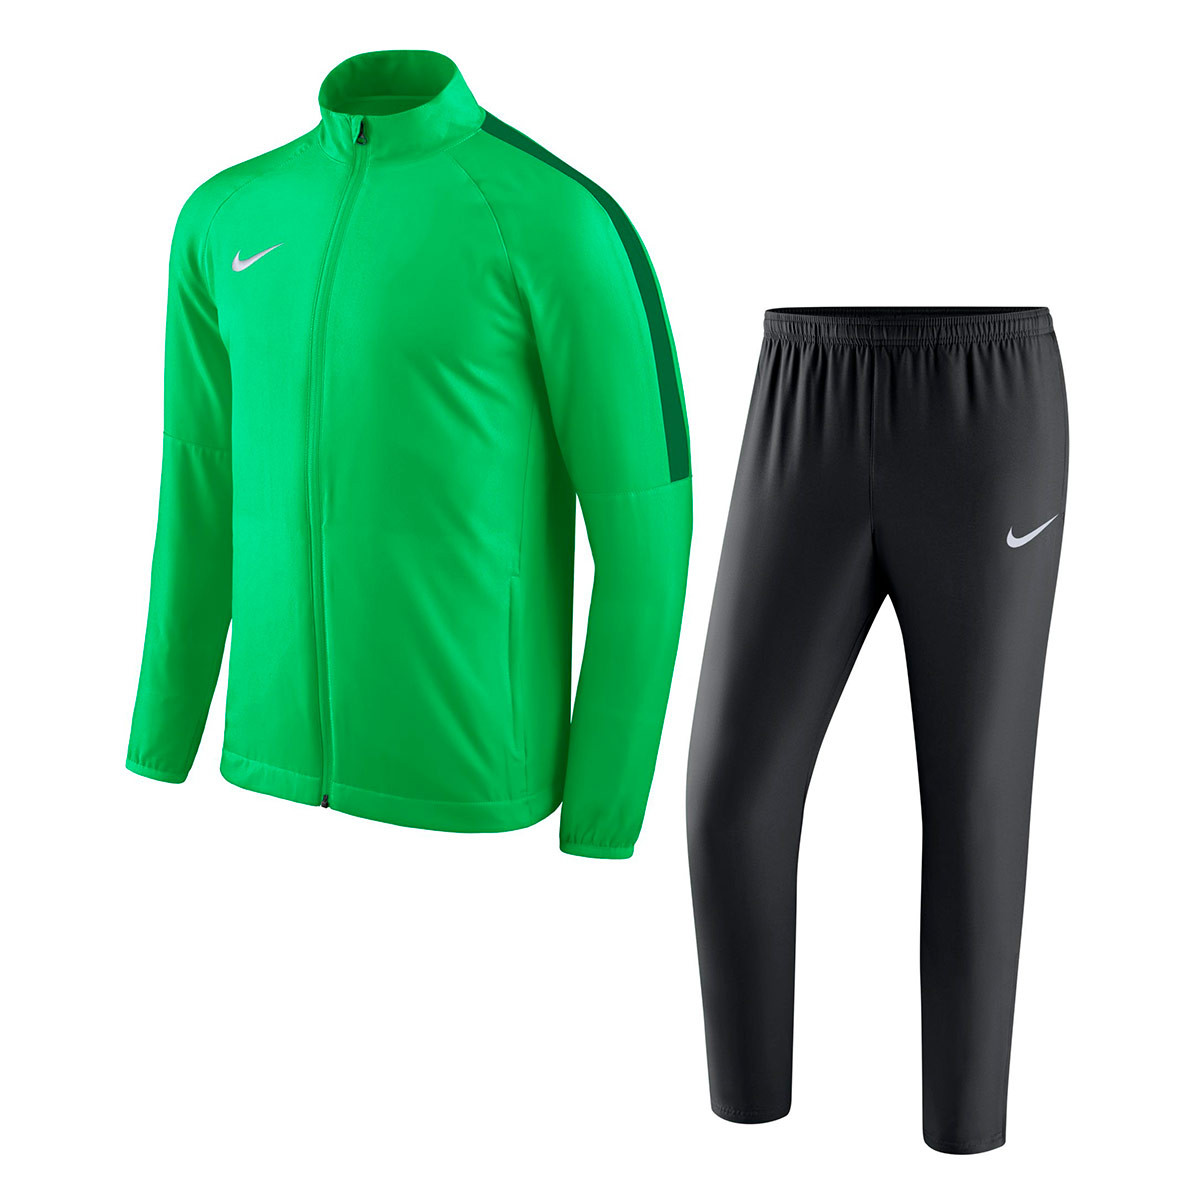 7b8af69d27b9e Tracksuit Nike Academy 18 Woven Light green spark-Black-Pine green ...